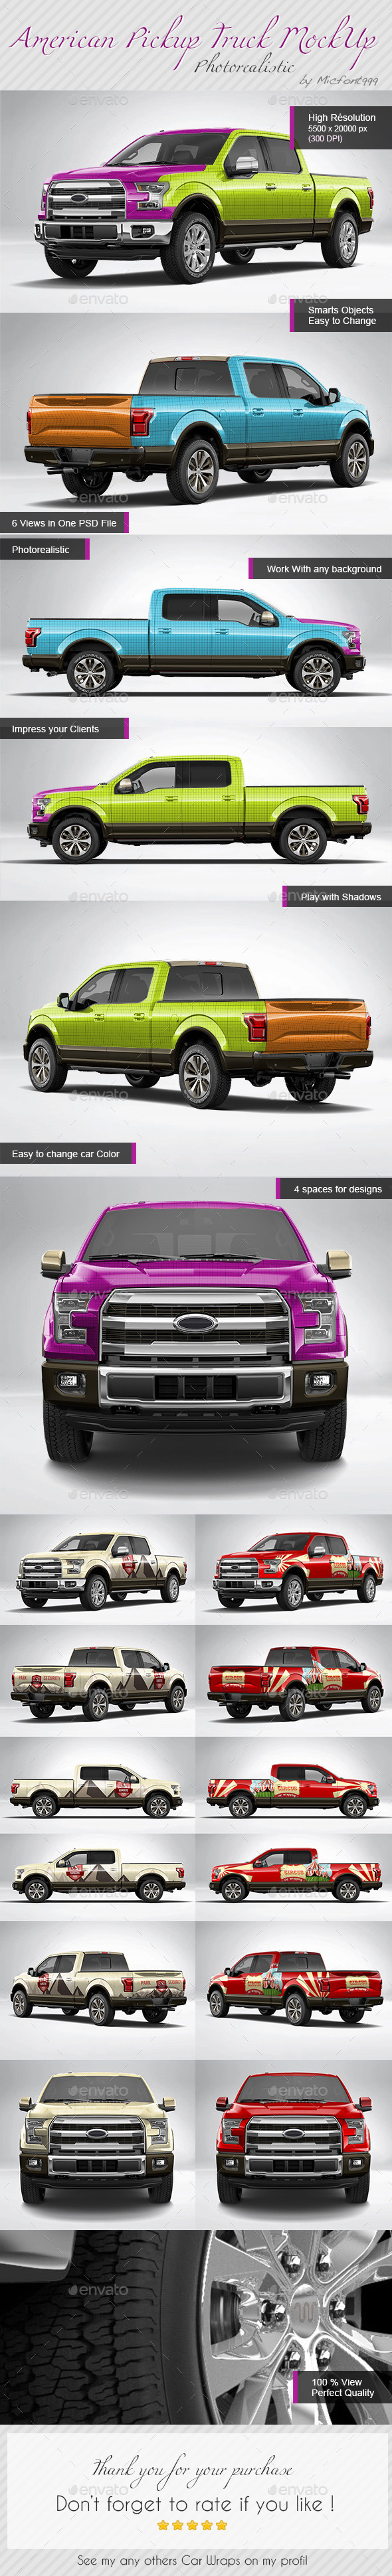 Photorealistic American Pickup Truck Wrap Mock-up - Vehicle Wraps Print